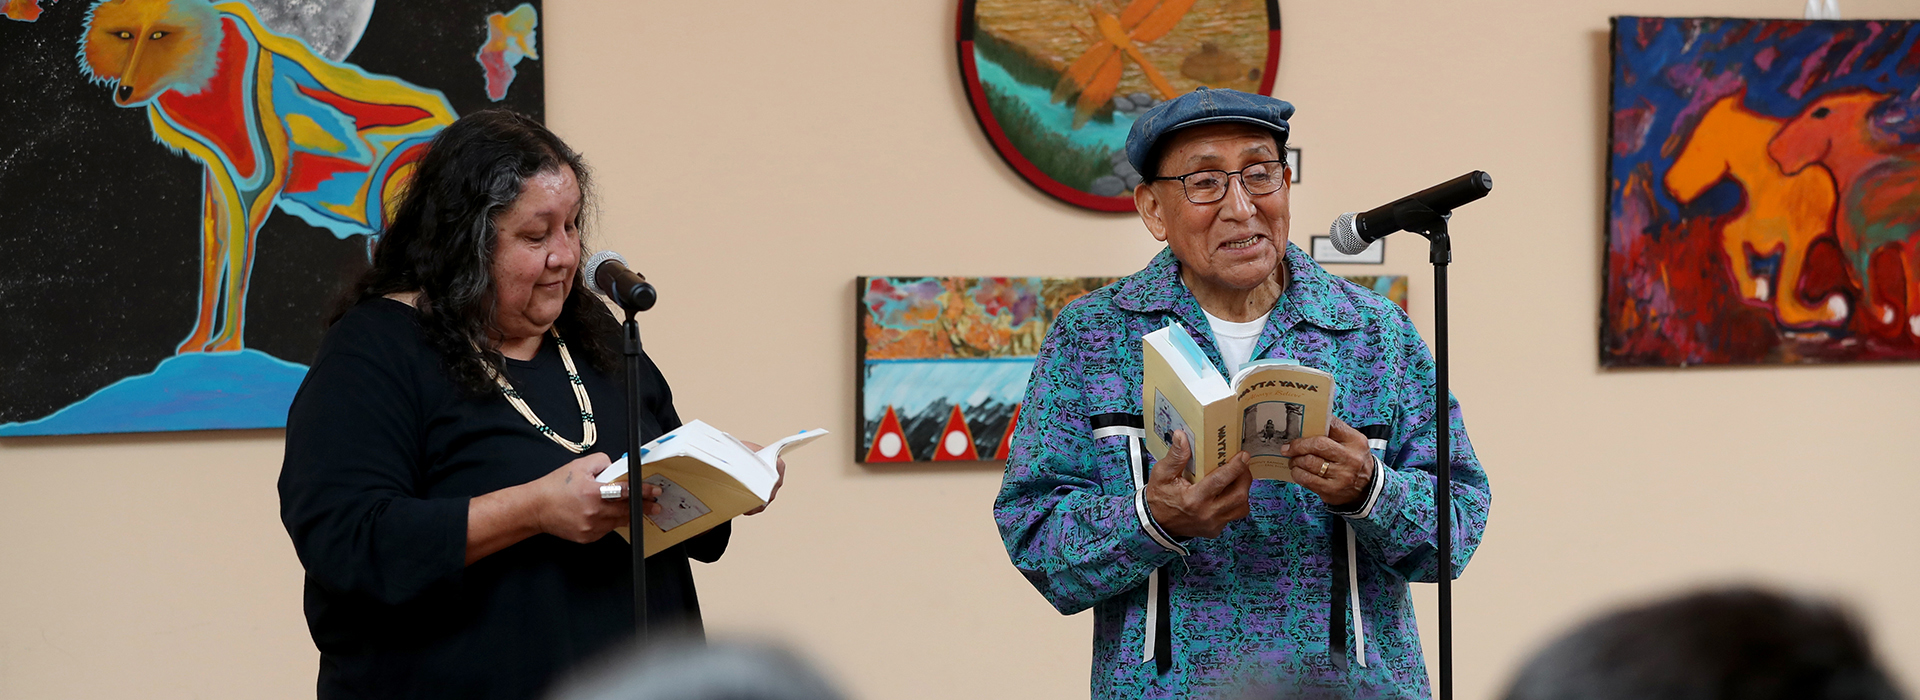 CSUSB partners with community to present Annual Native Voices Poetry Festival at Dorothy Ramon Learning Center in Banning